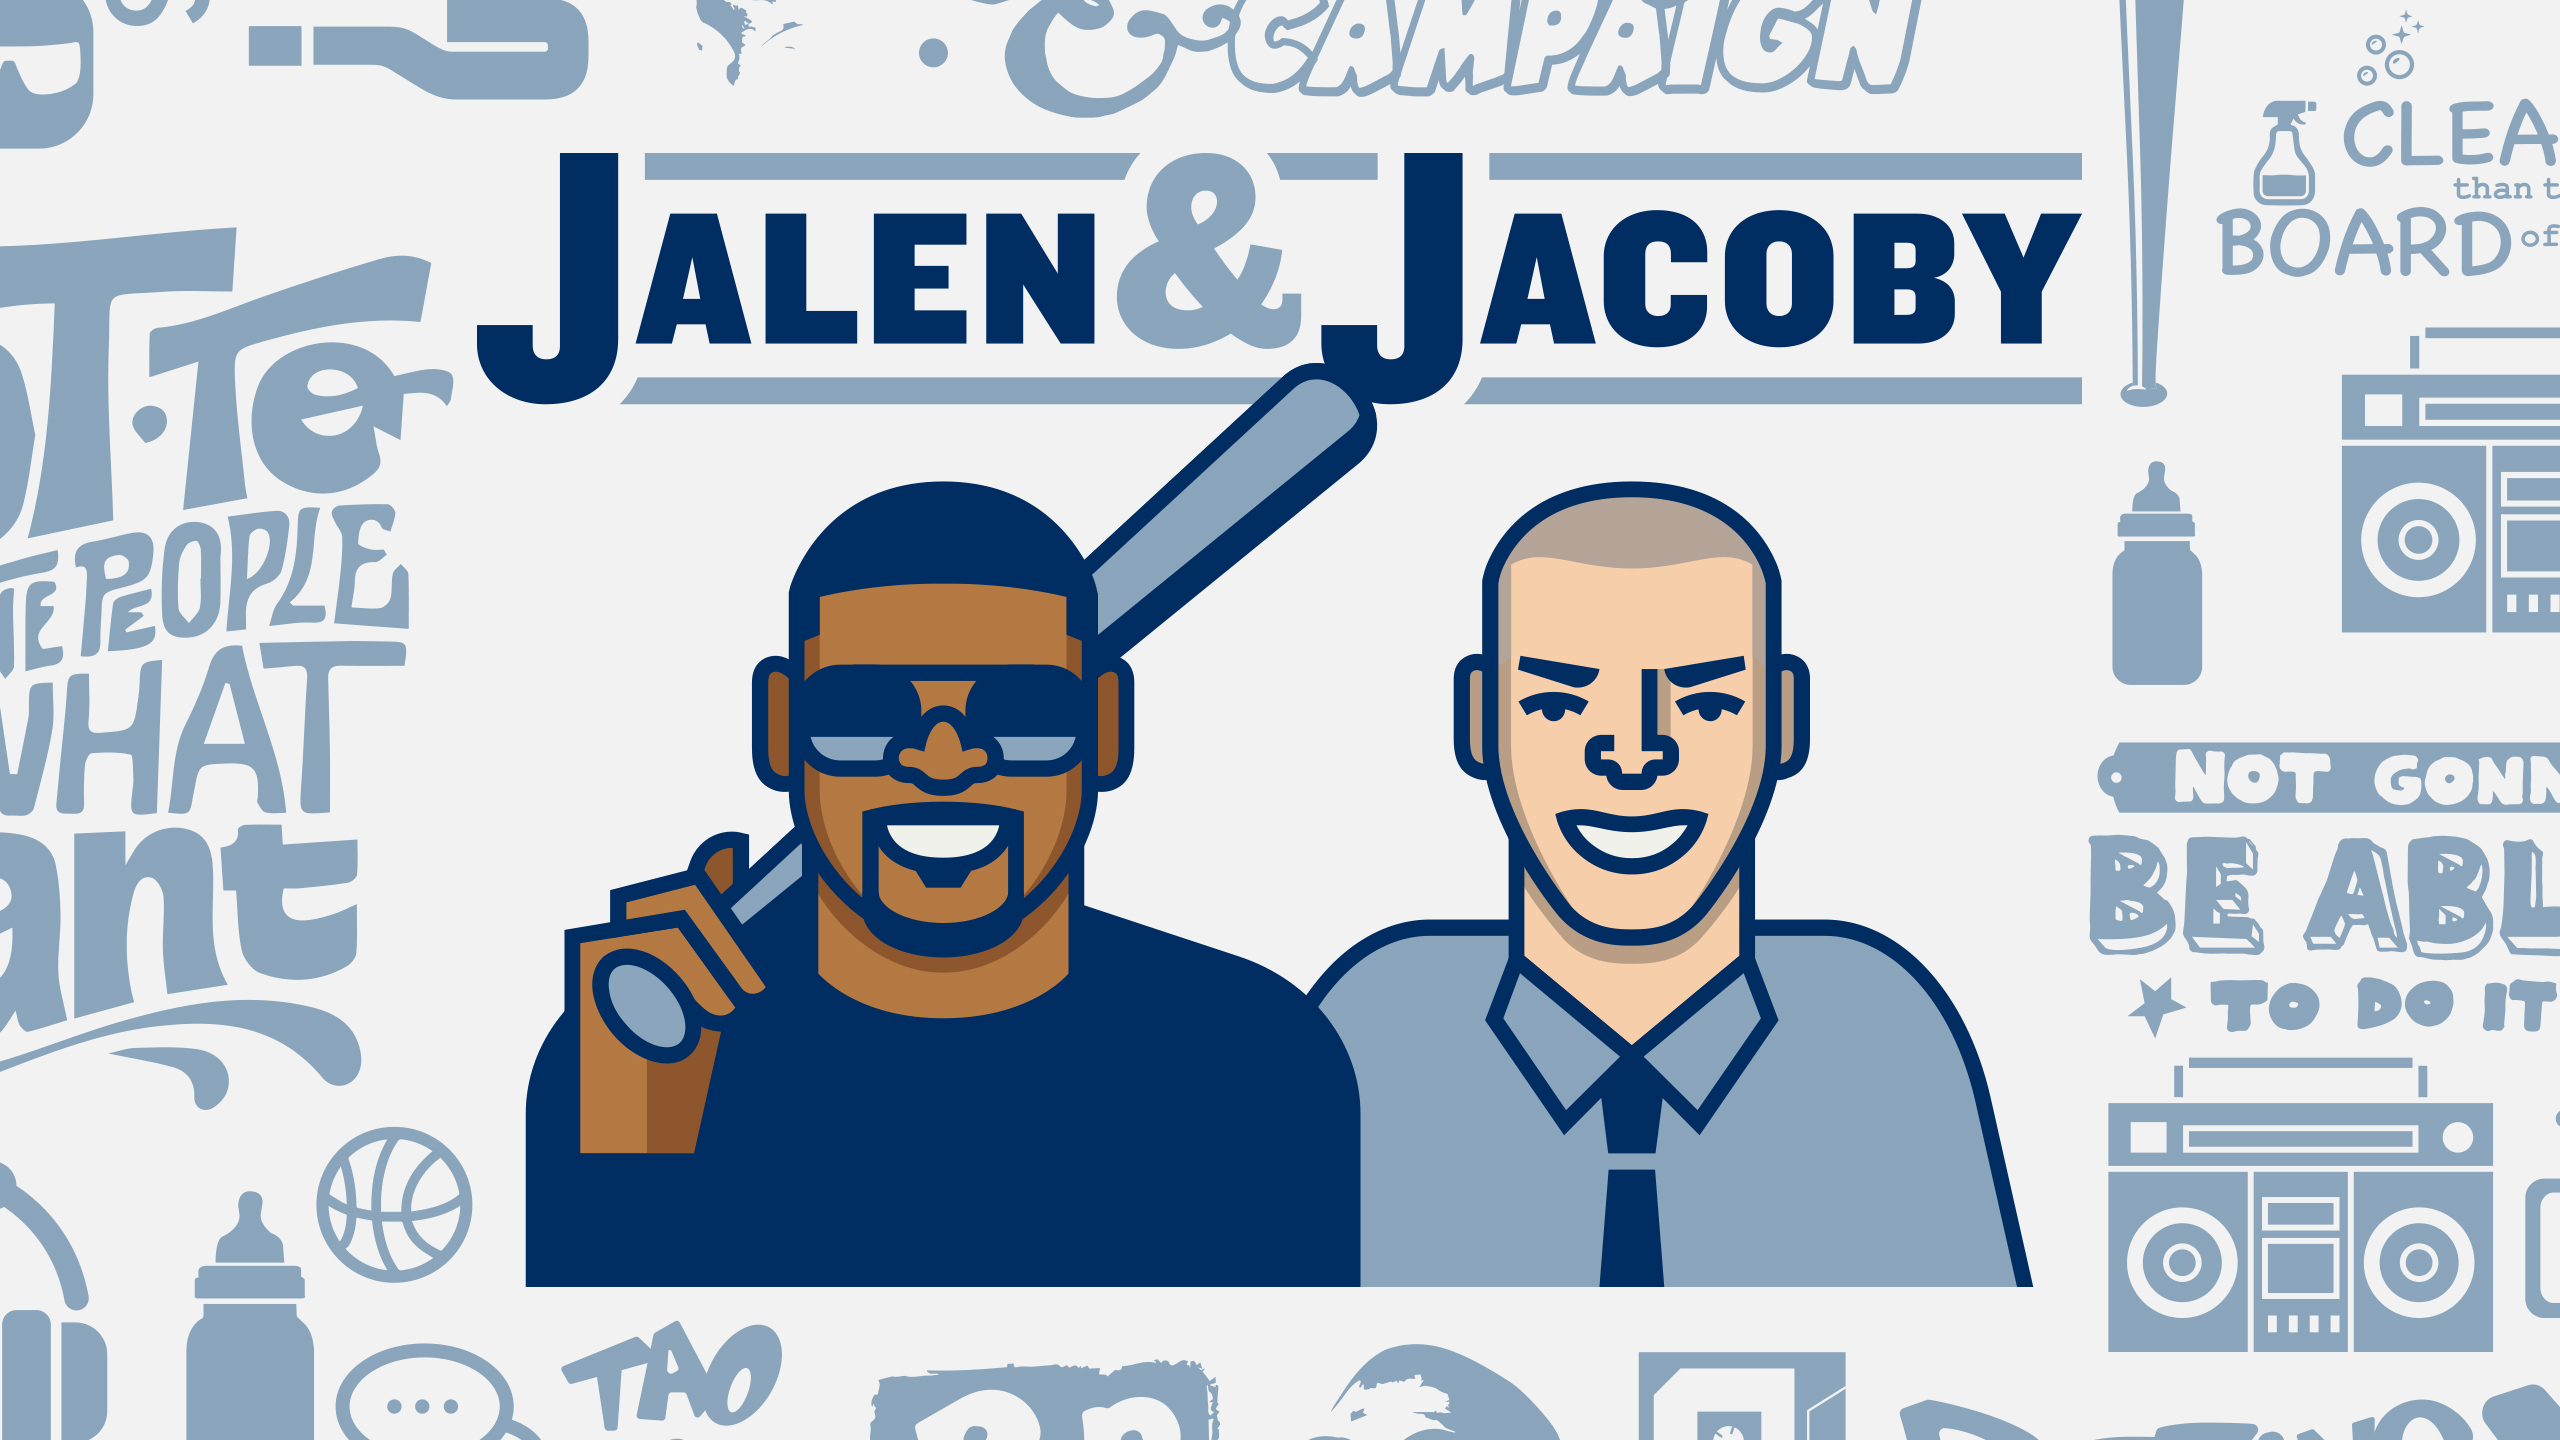 Wed, 10/17 - Jalen & Jacoby